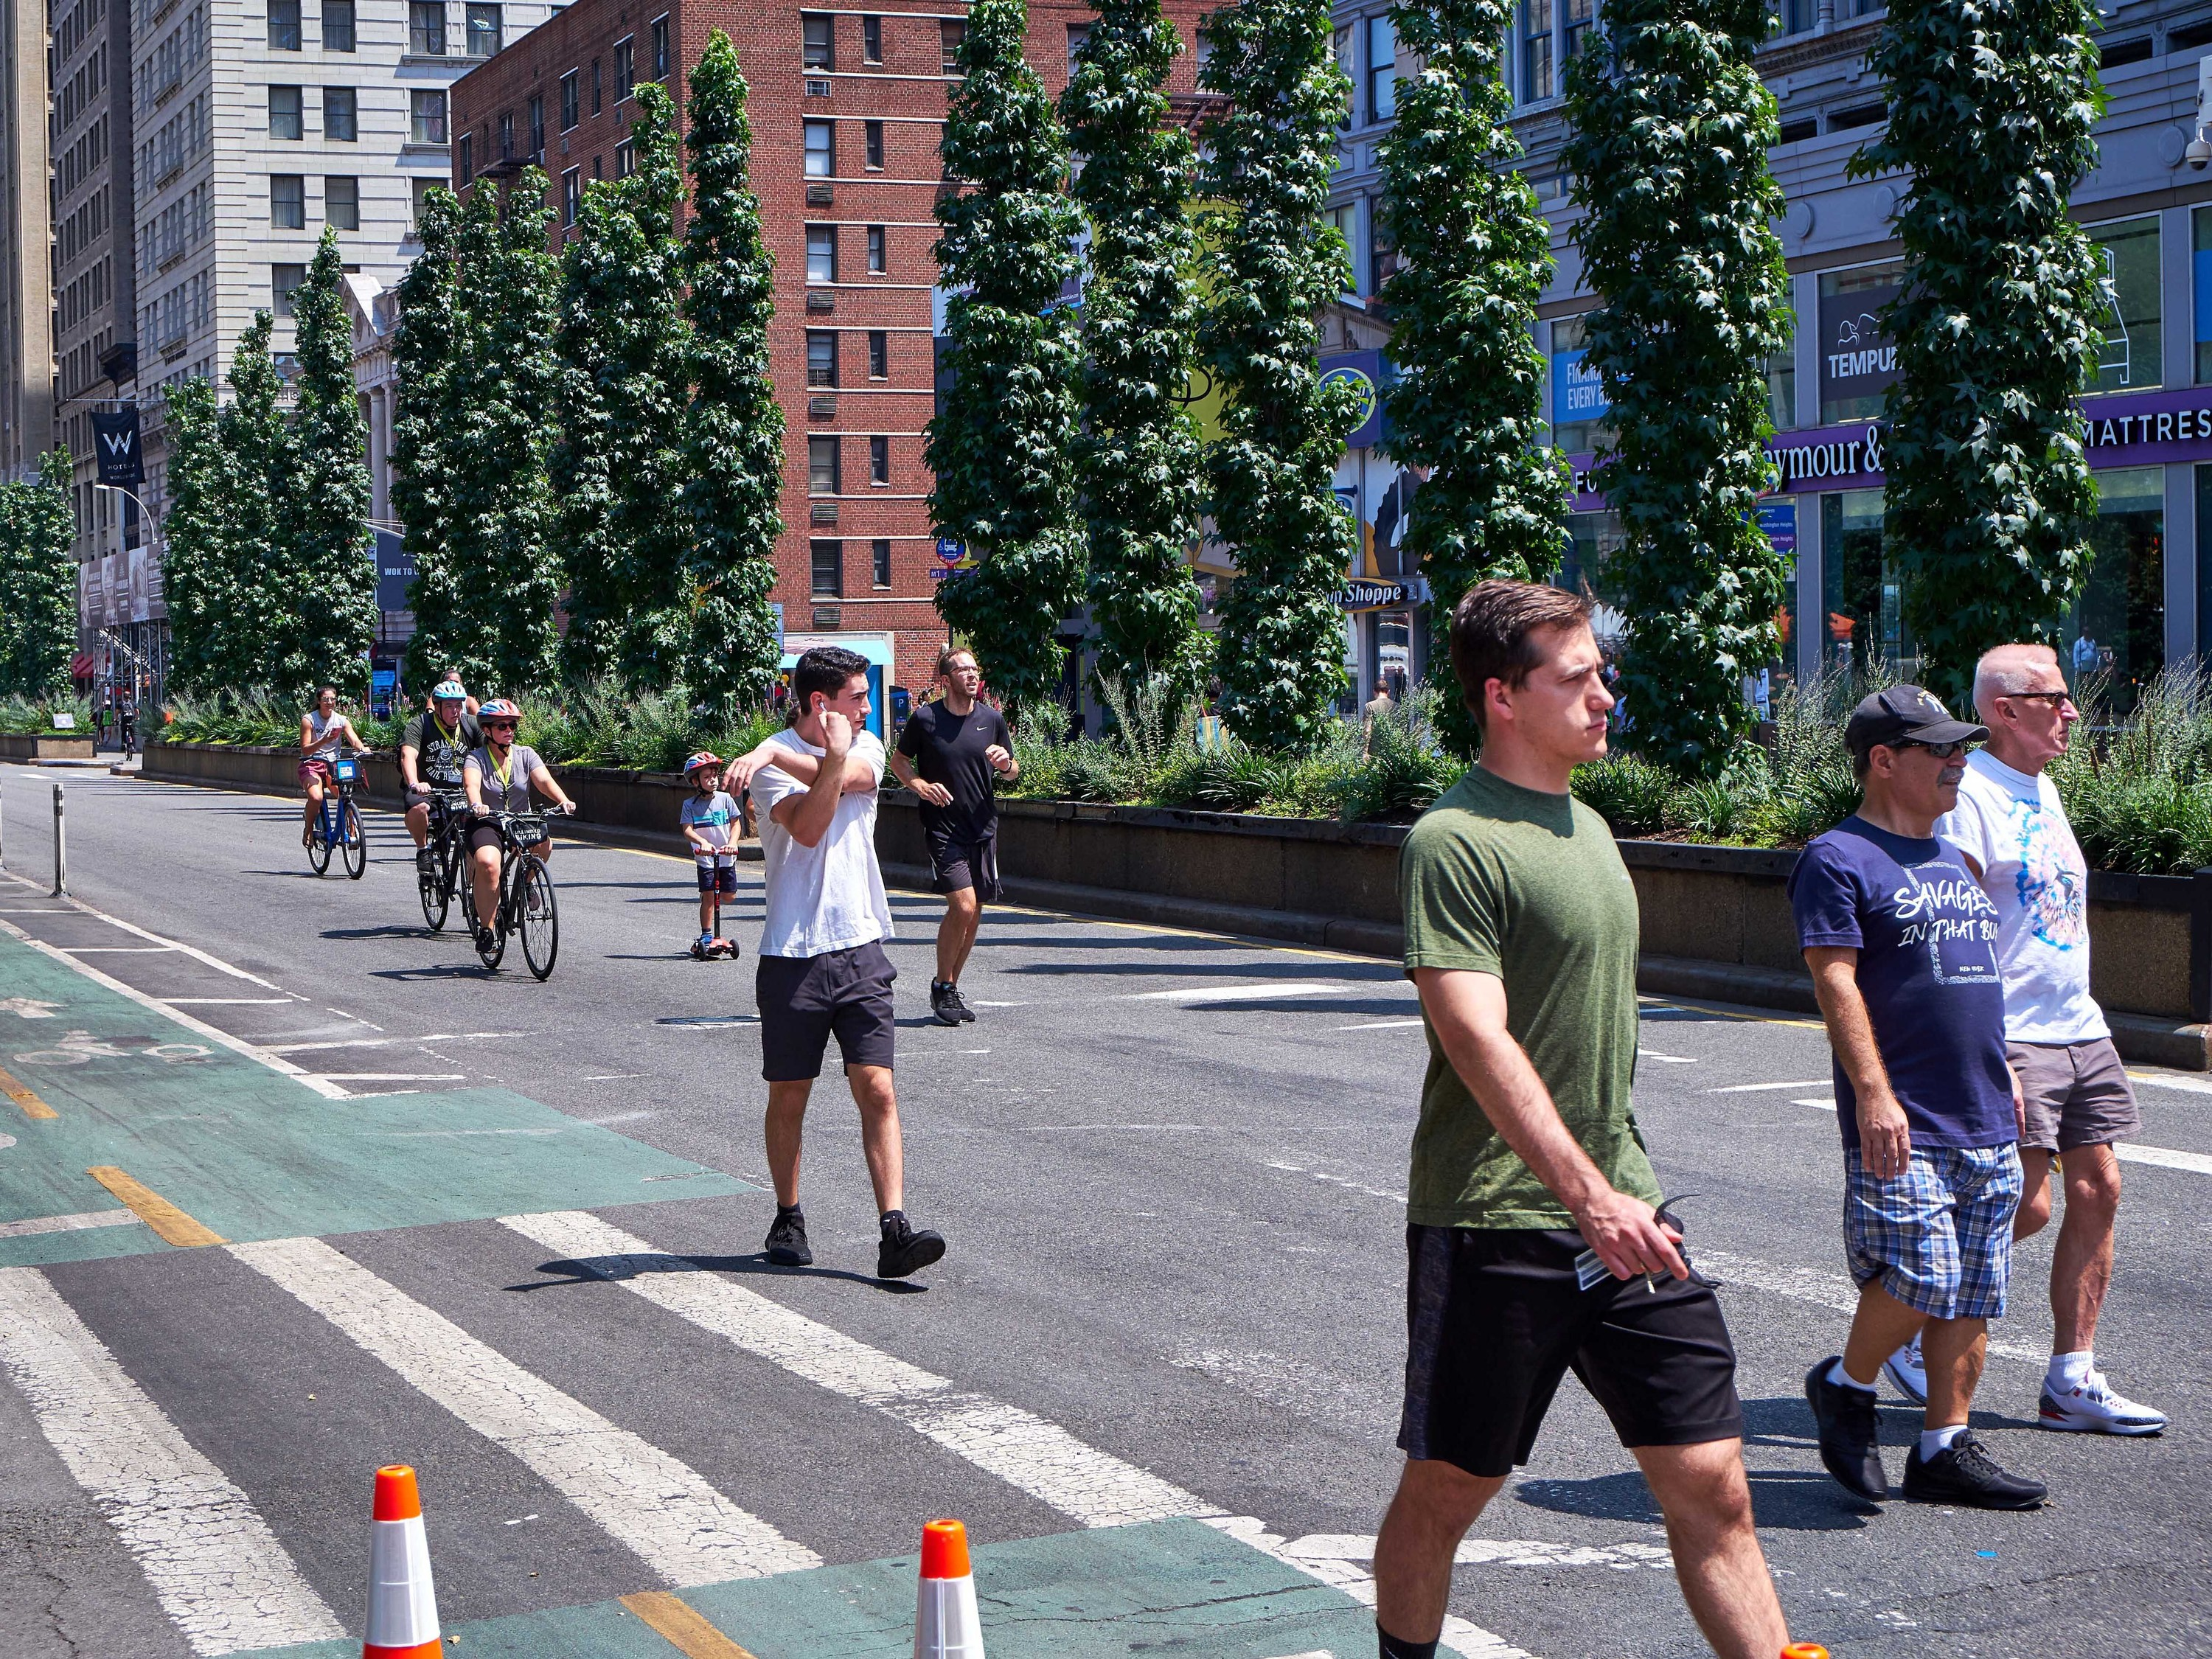 New York City opened 13 more miles of streets over Memorial Day Weekend